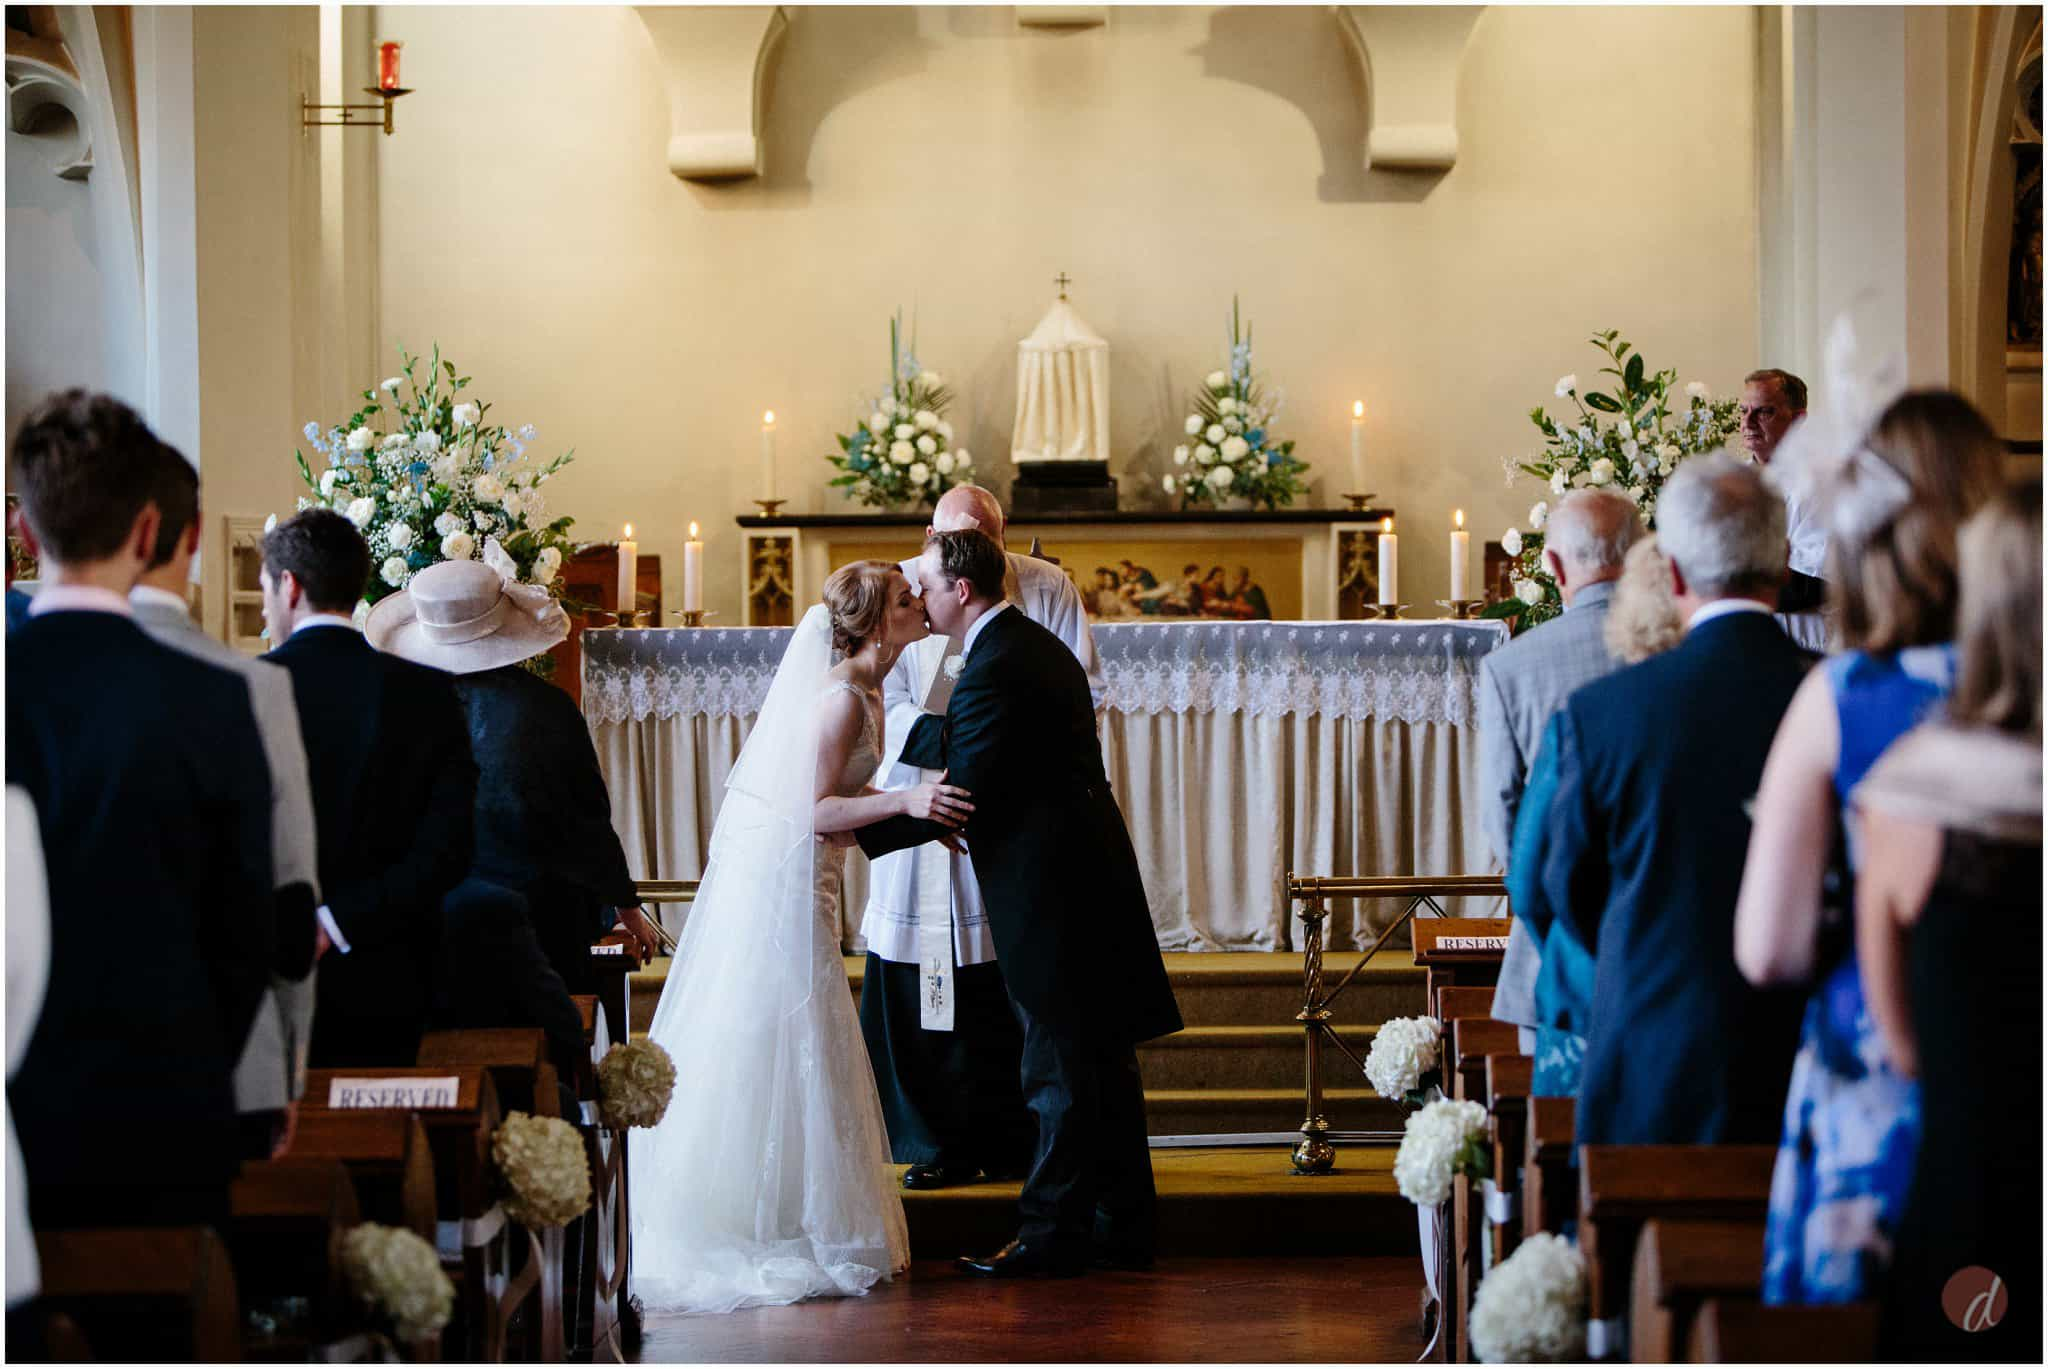 Our Lady Help of Christians wedding photographs